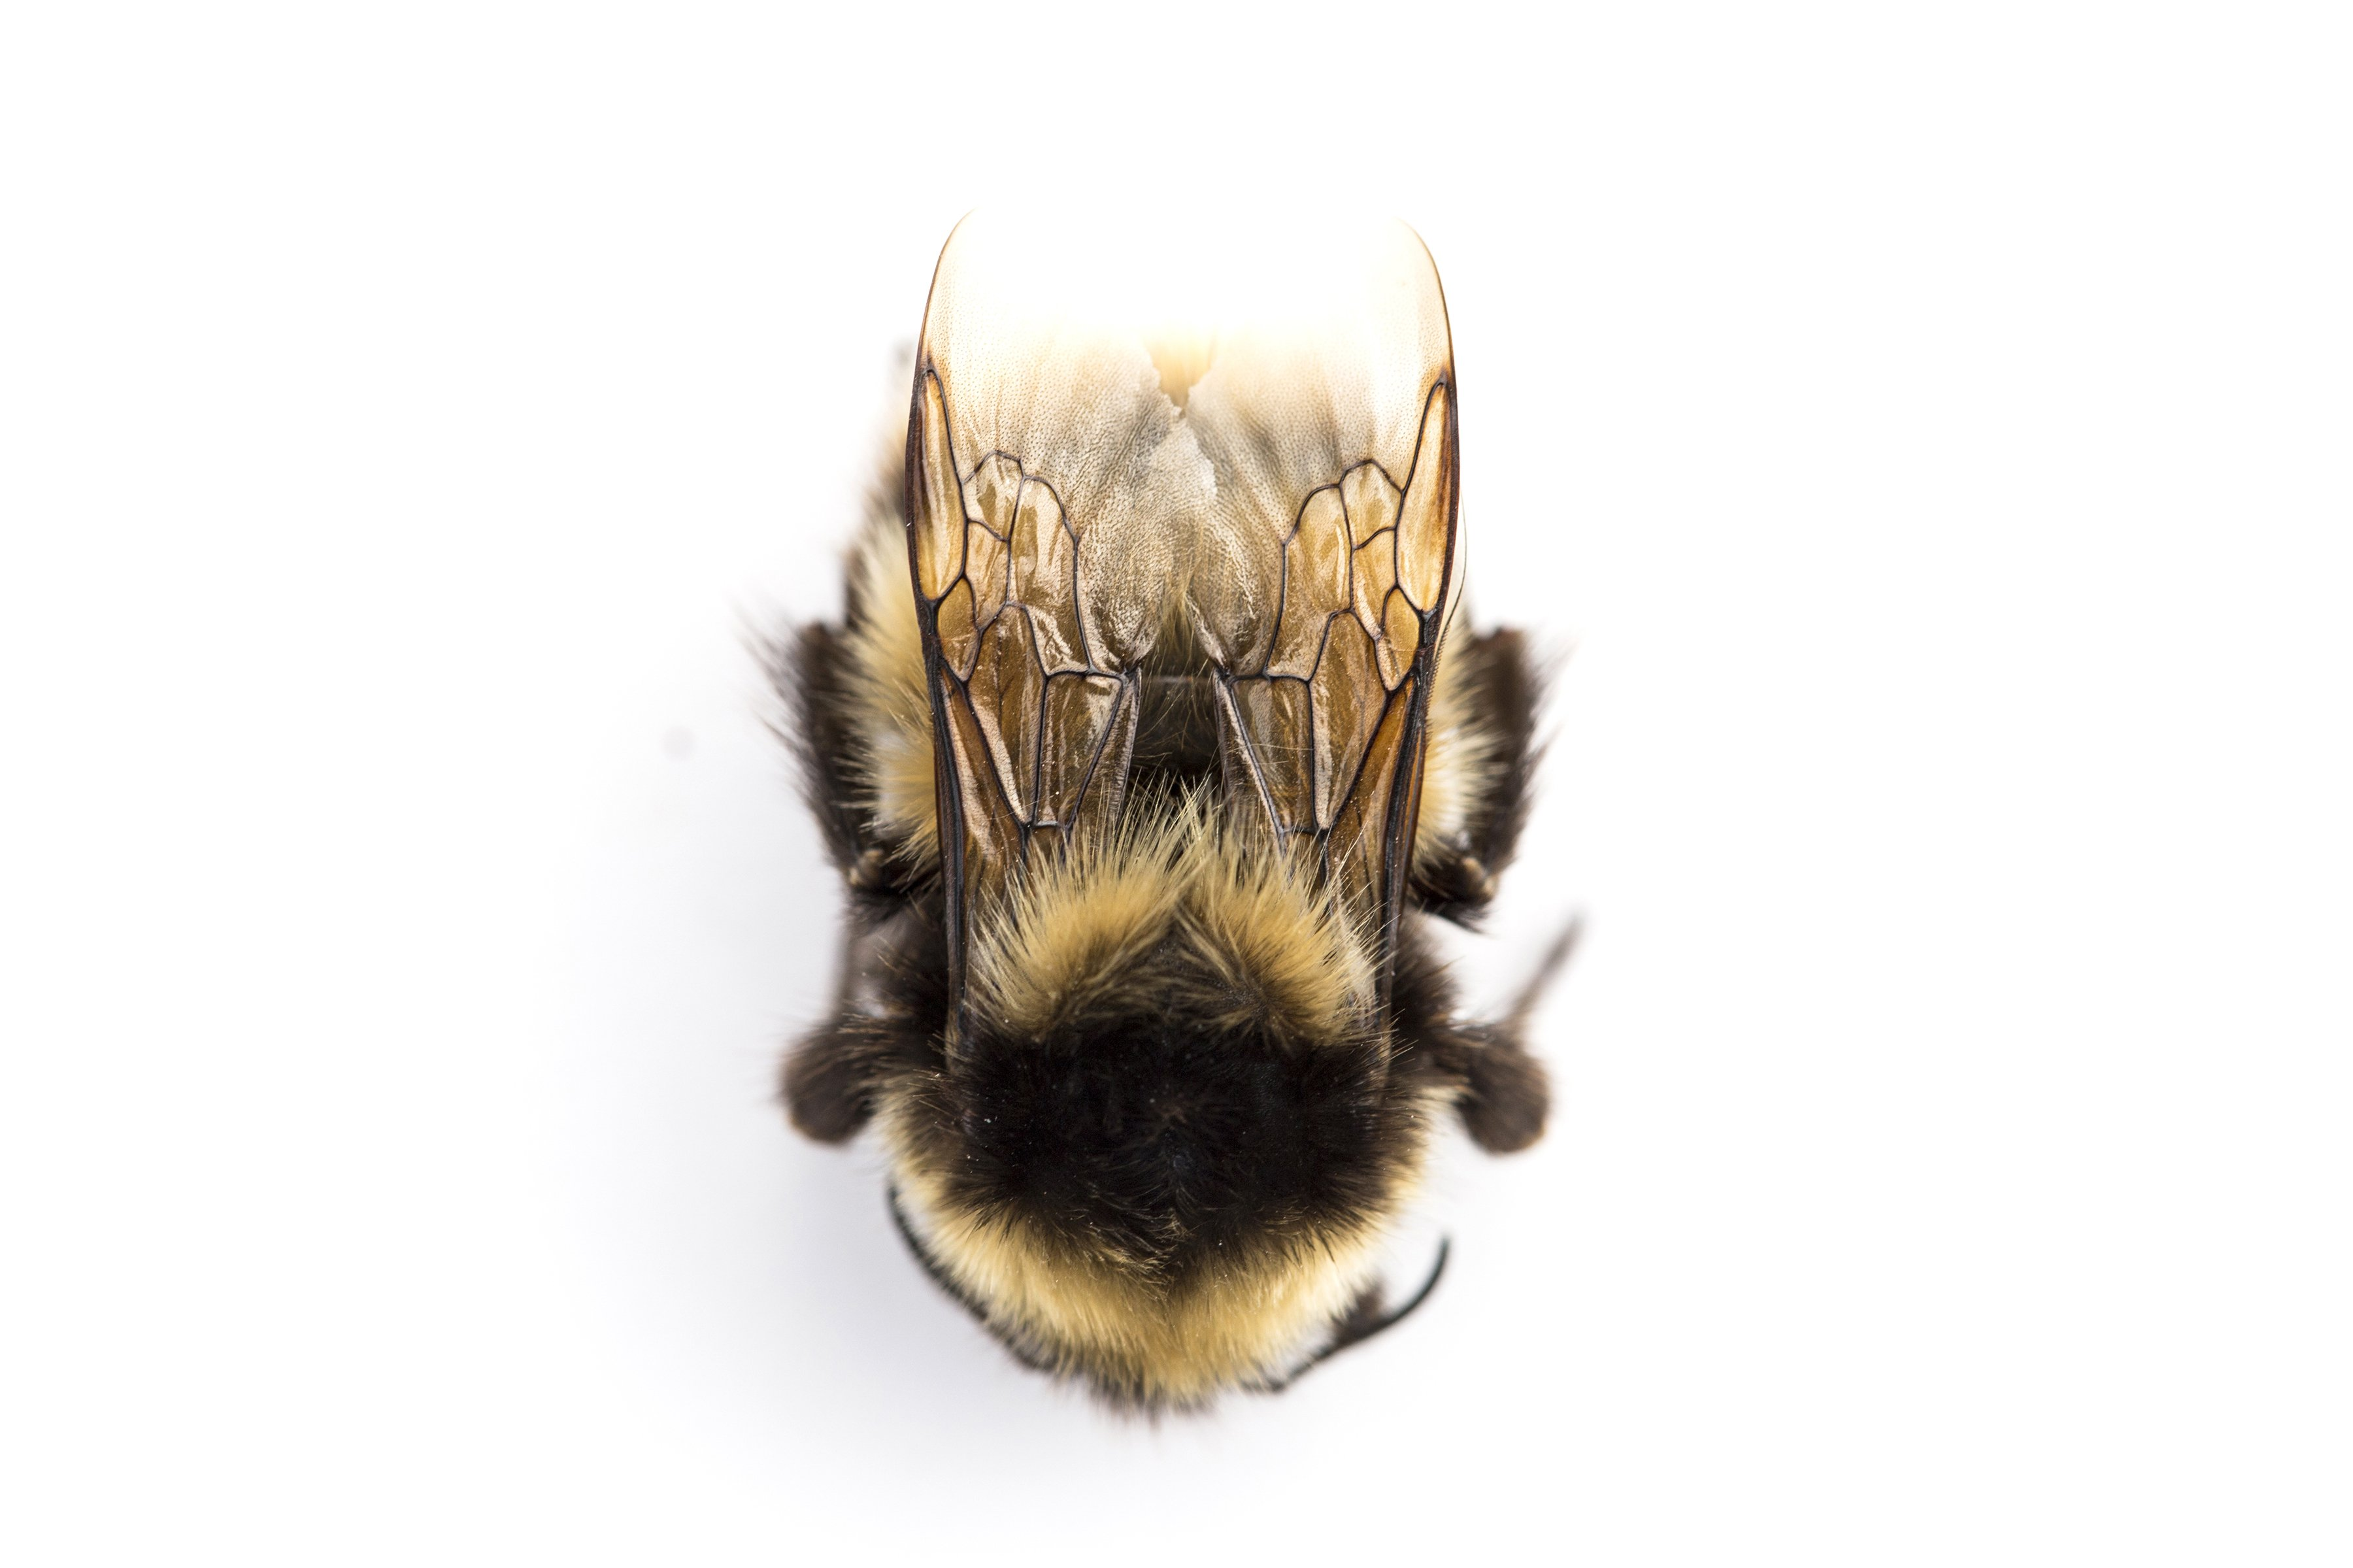 6 scientists, 1,000 miles, 1 prize: The Arctic Alaska Bumblebee